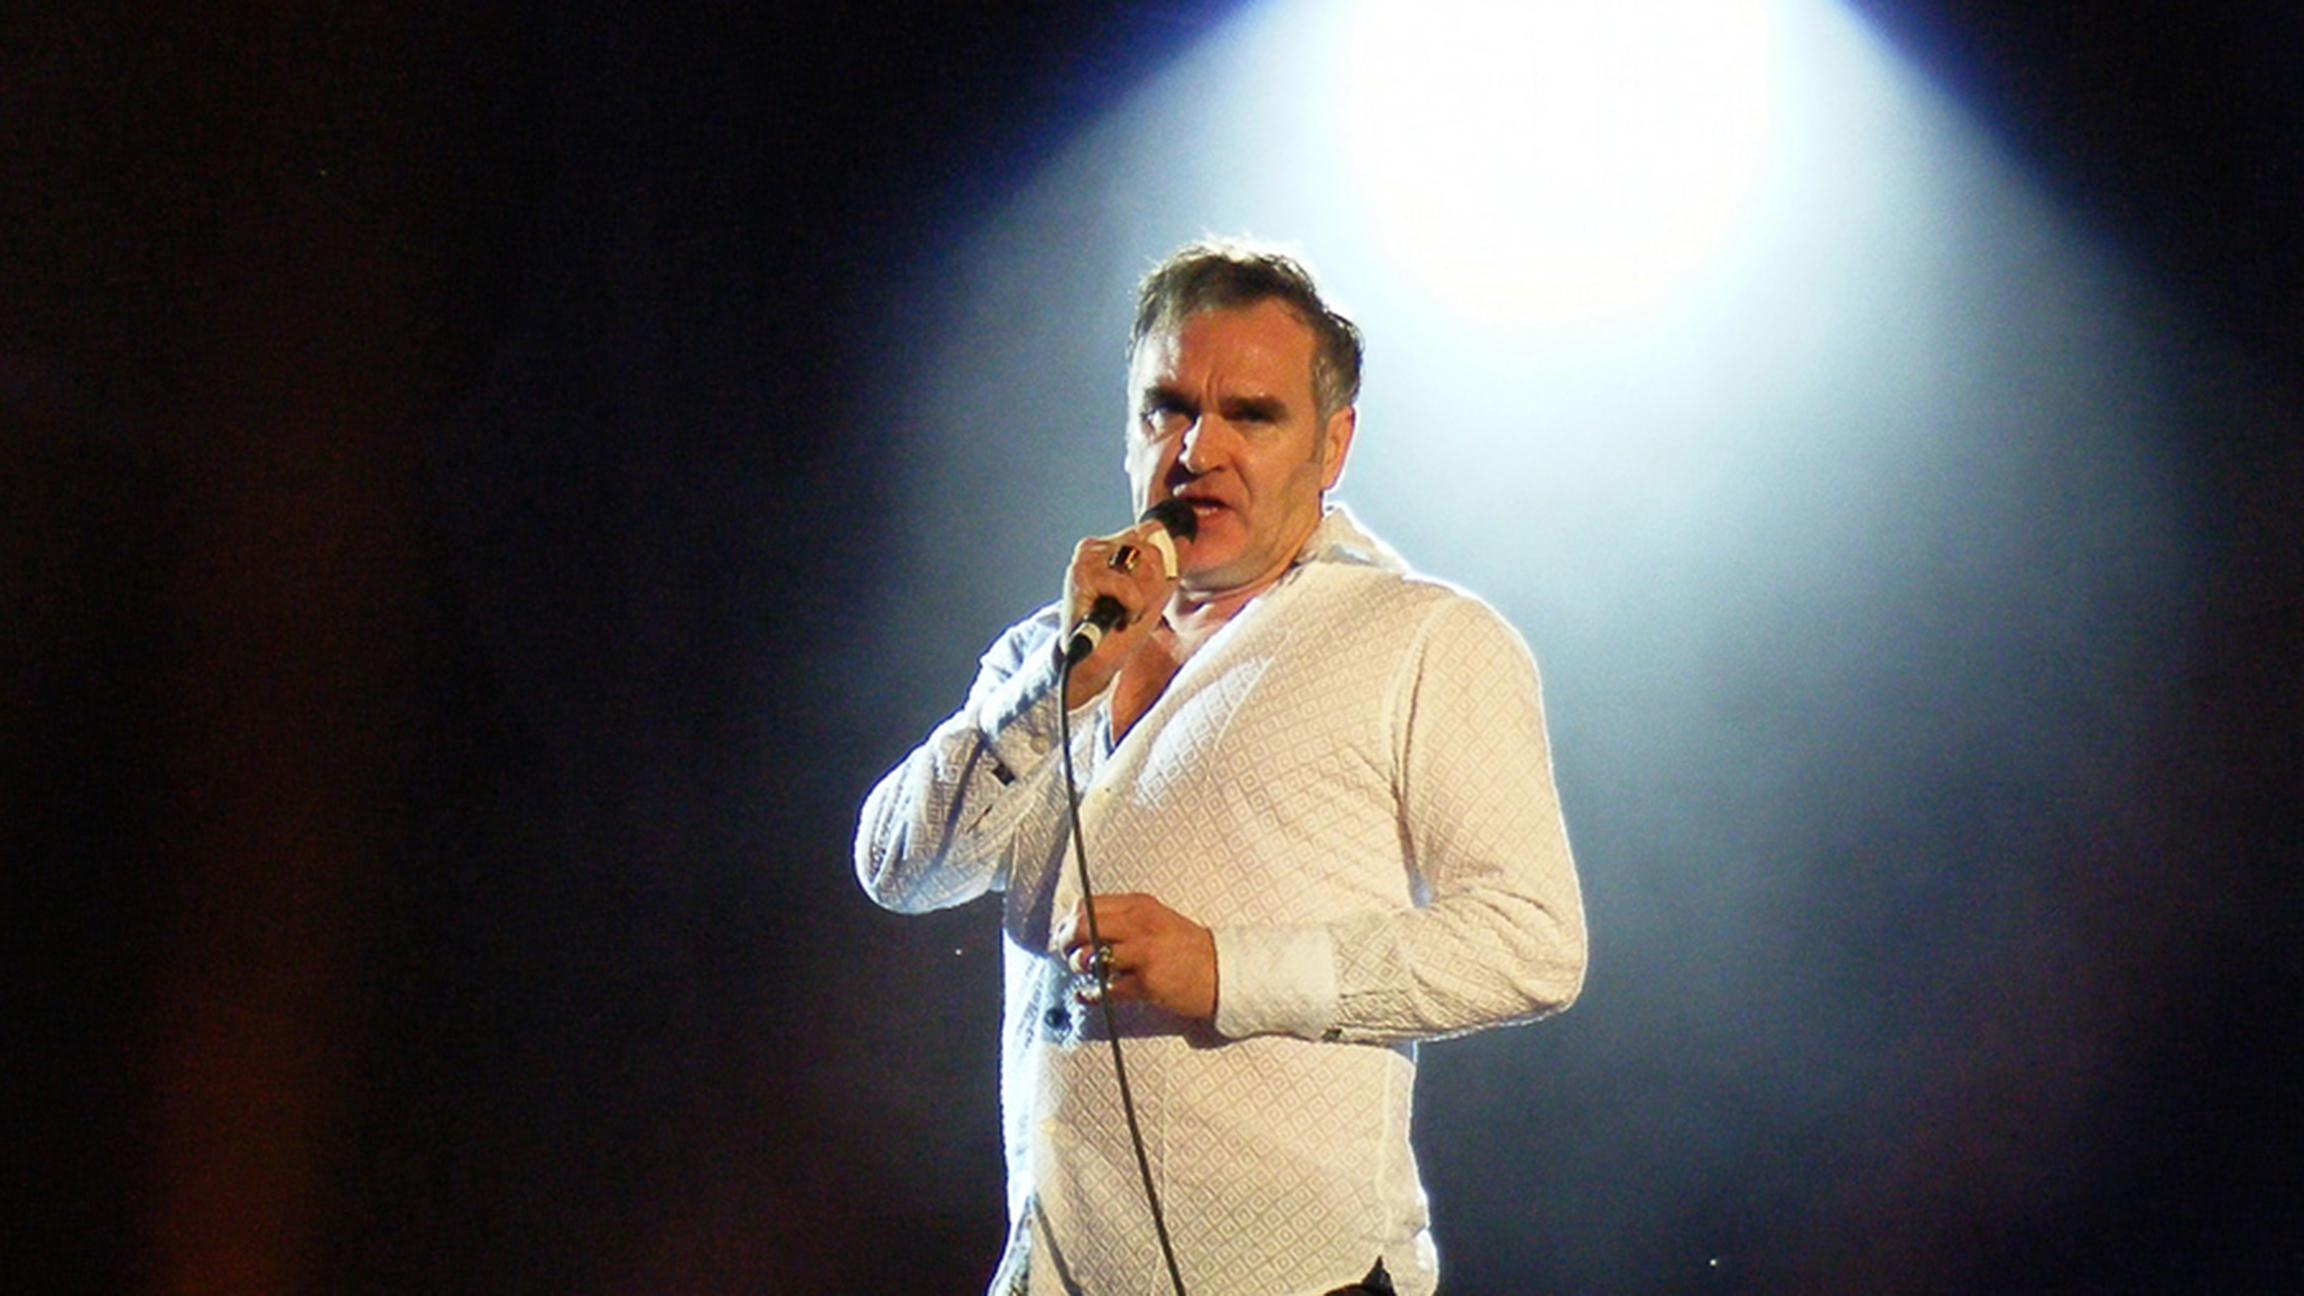 This charming man: Morrissey is scheduled to appear at Riot Fest on Saturday night. (Man Alive! / Flickr)